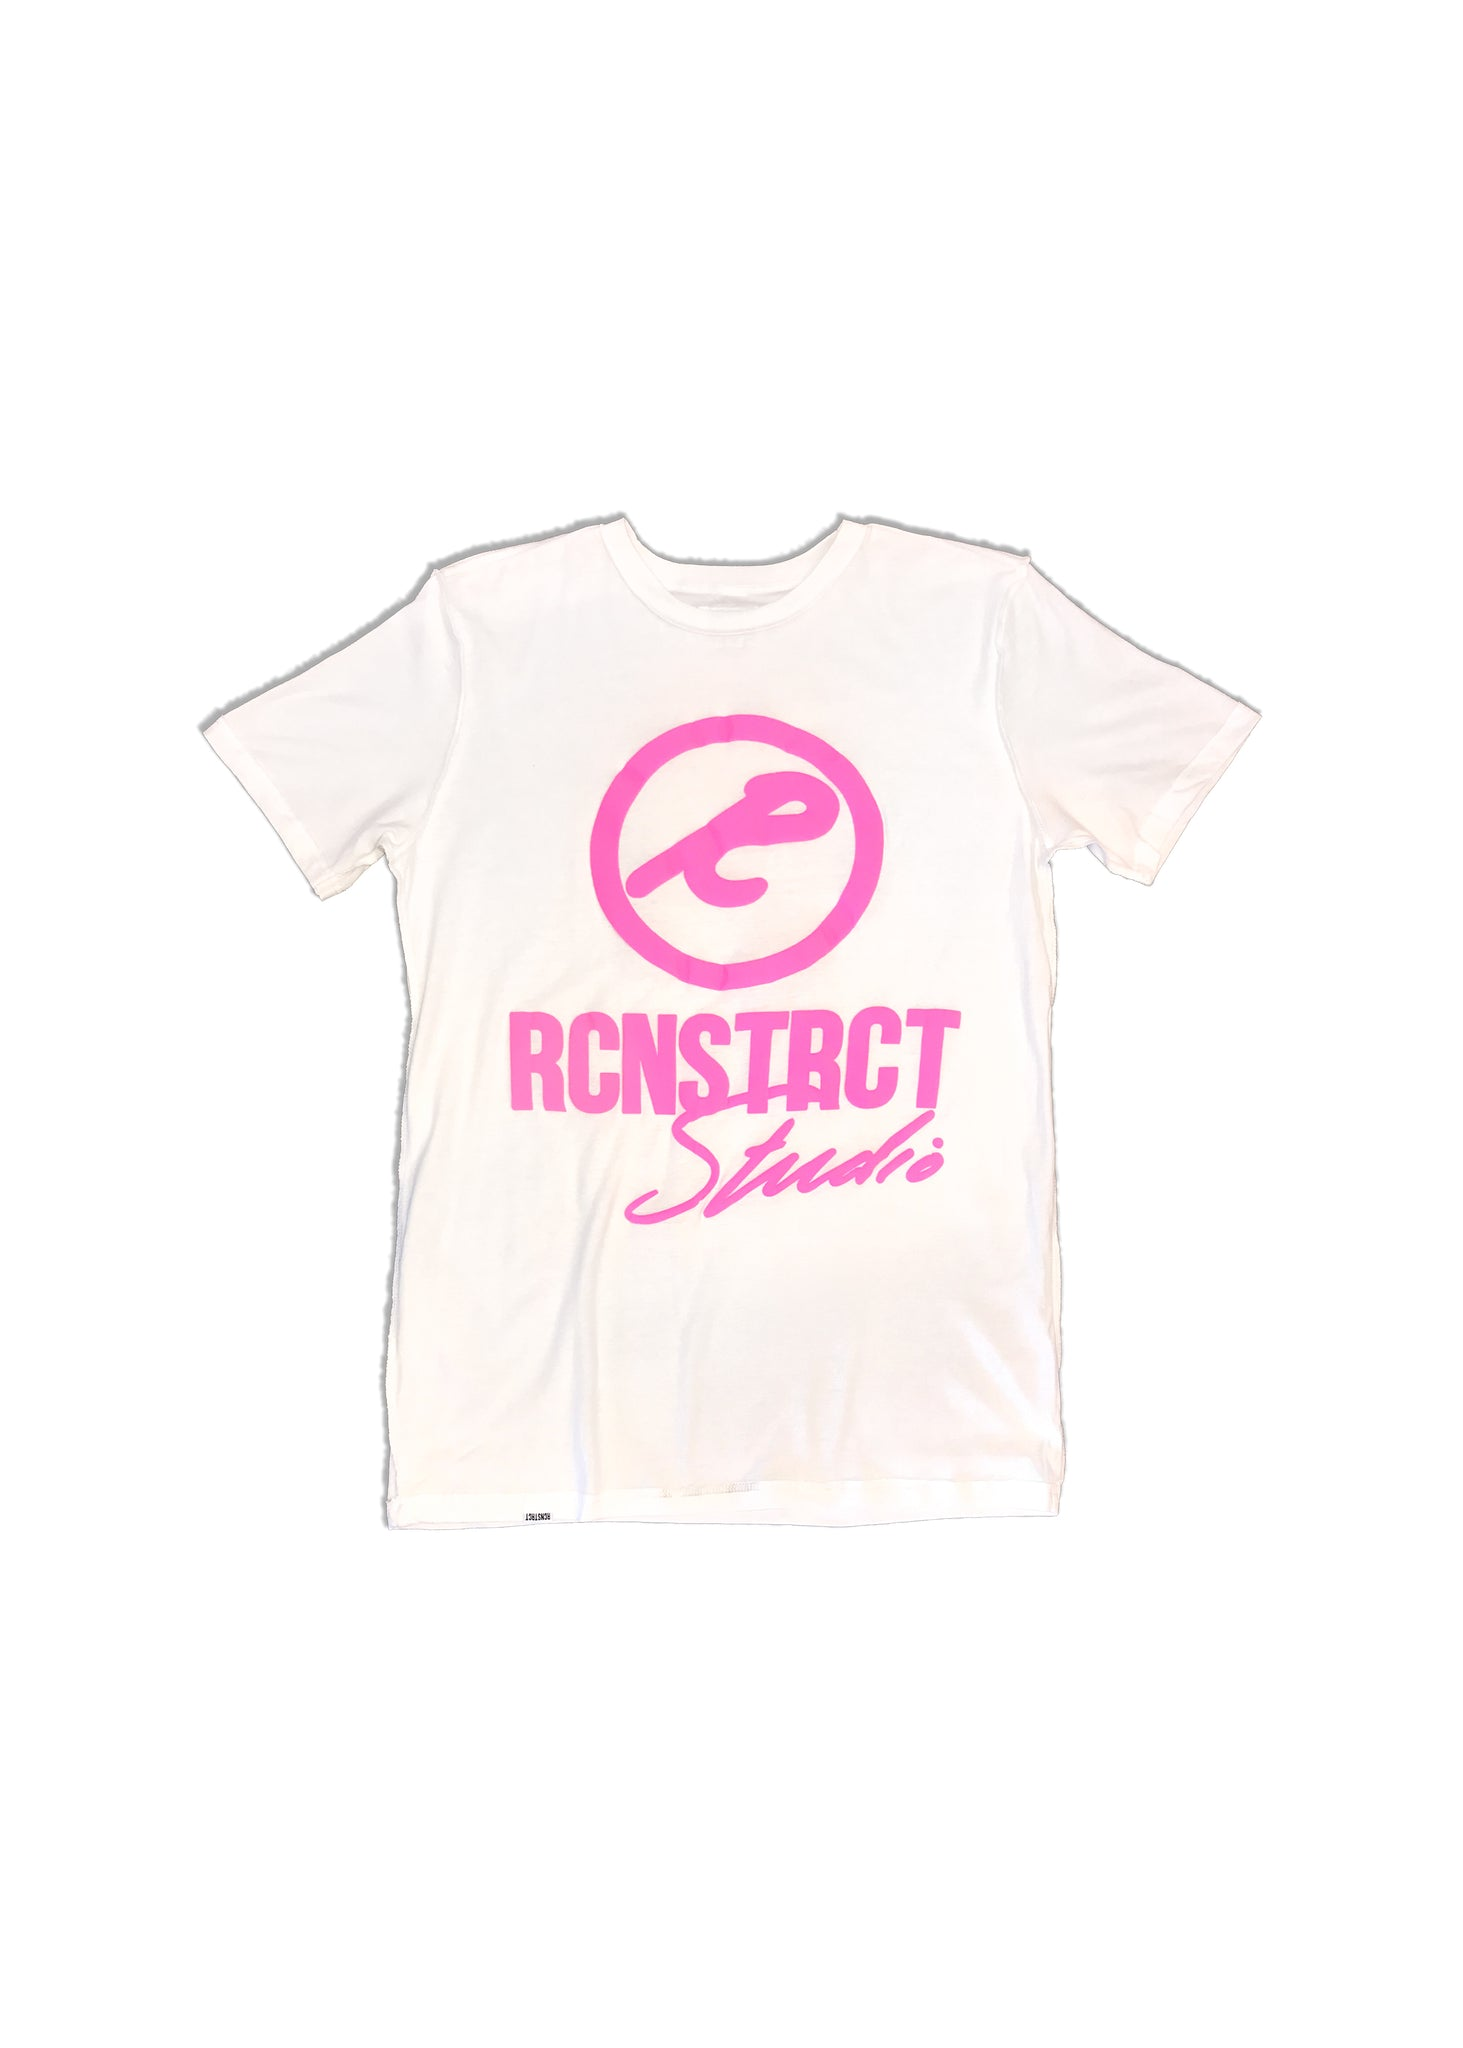 RCNSTRCT BASICS // PINK PUFFY PAINT